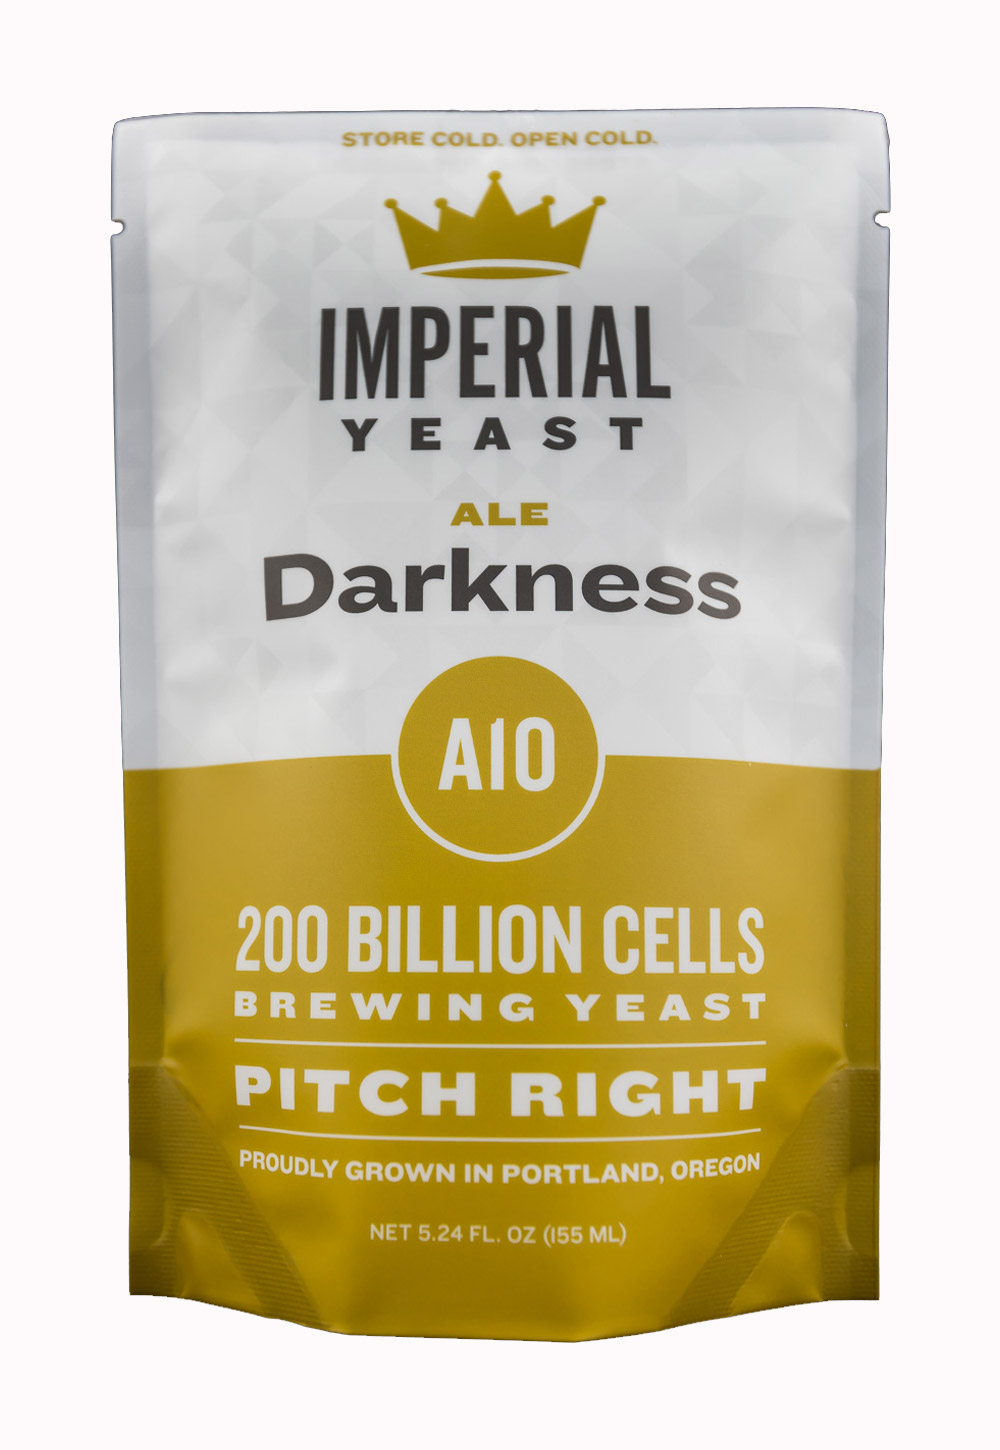 Imperial Beer Yeast, A10 Darkness-0